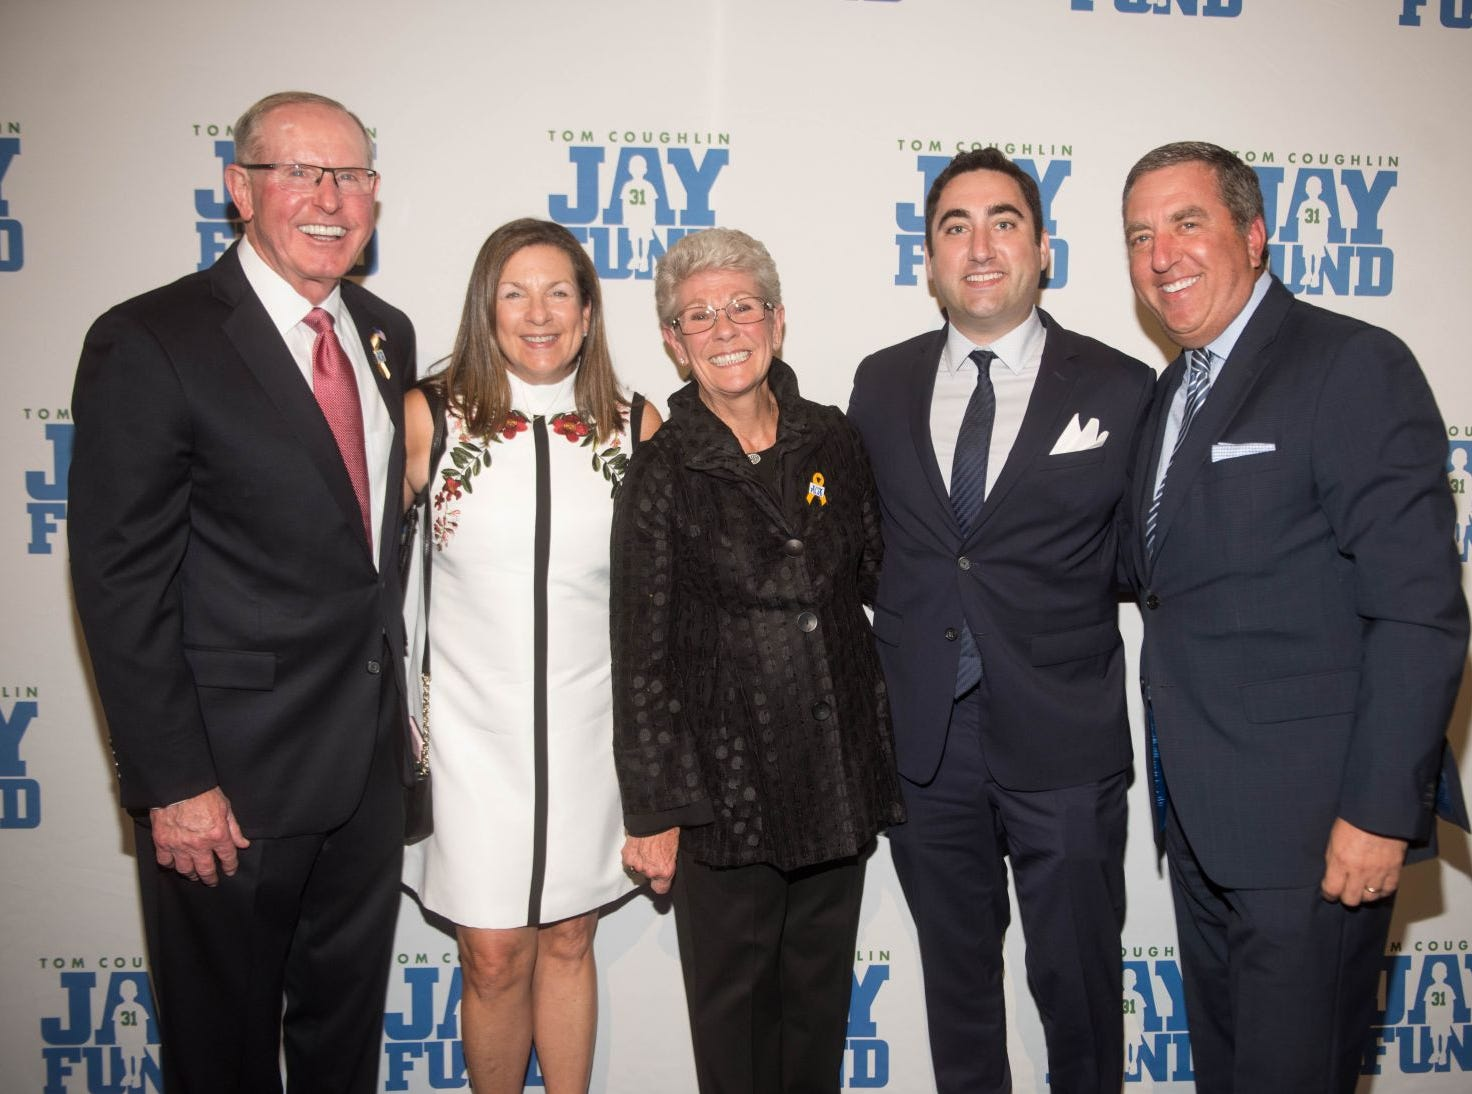 Tom Coughlin, Besie Swartz, Judy Coughlin and John Miller. The 14th annual Jay Fund Champions for Children Gala was held at Cipriani 42nd Street. 09/21/2018